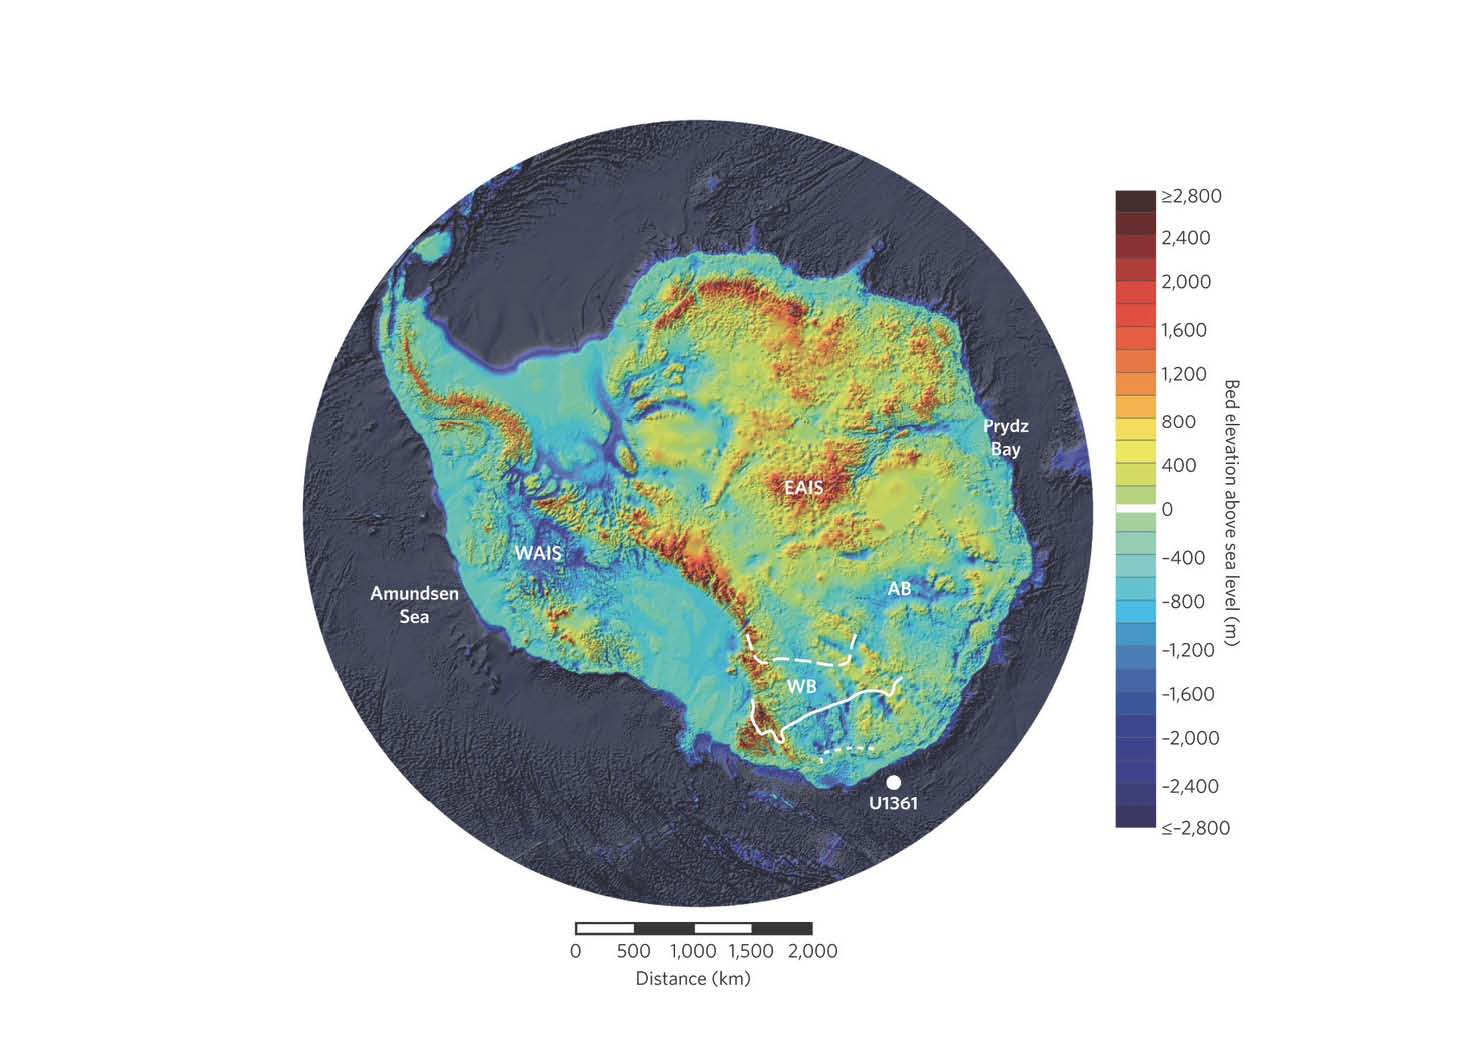 glaciers causing rise of sea level A glacier doesn't melt slowly and steadily like an ice cube on a table  and sea  water with the glacier's structure can cause increasingly fast melting and retreat   sea levels may actually go down in some regions, but rising sea levels will be .